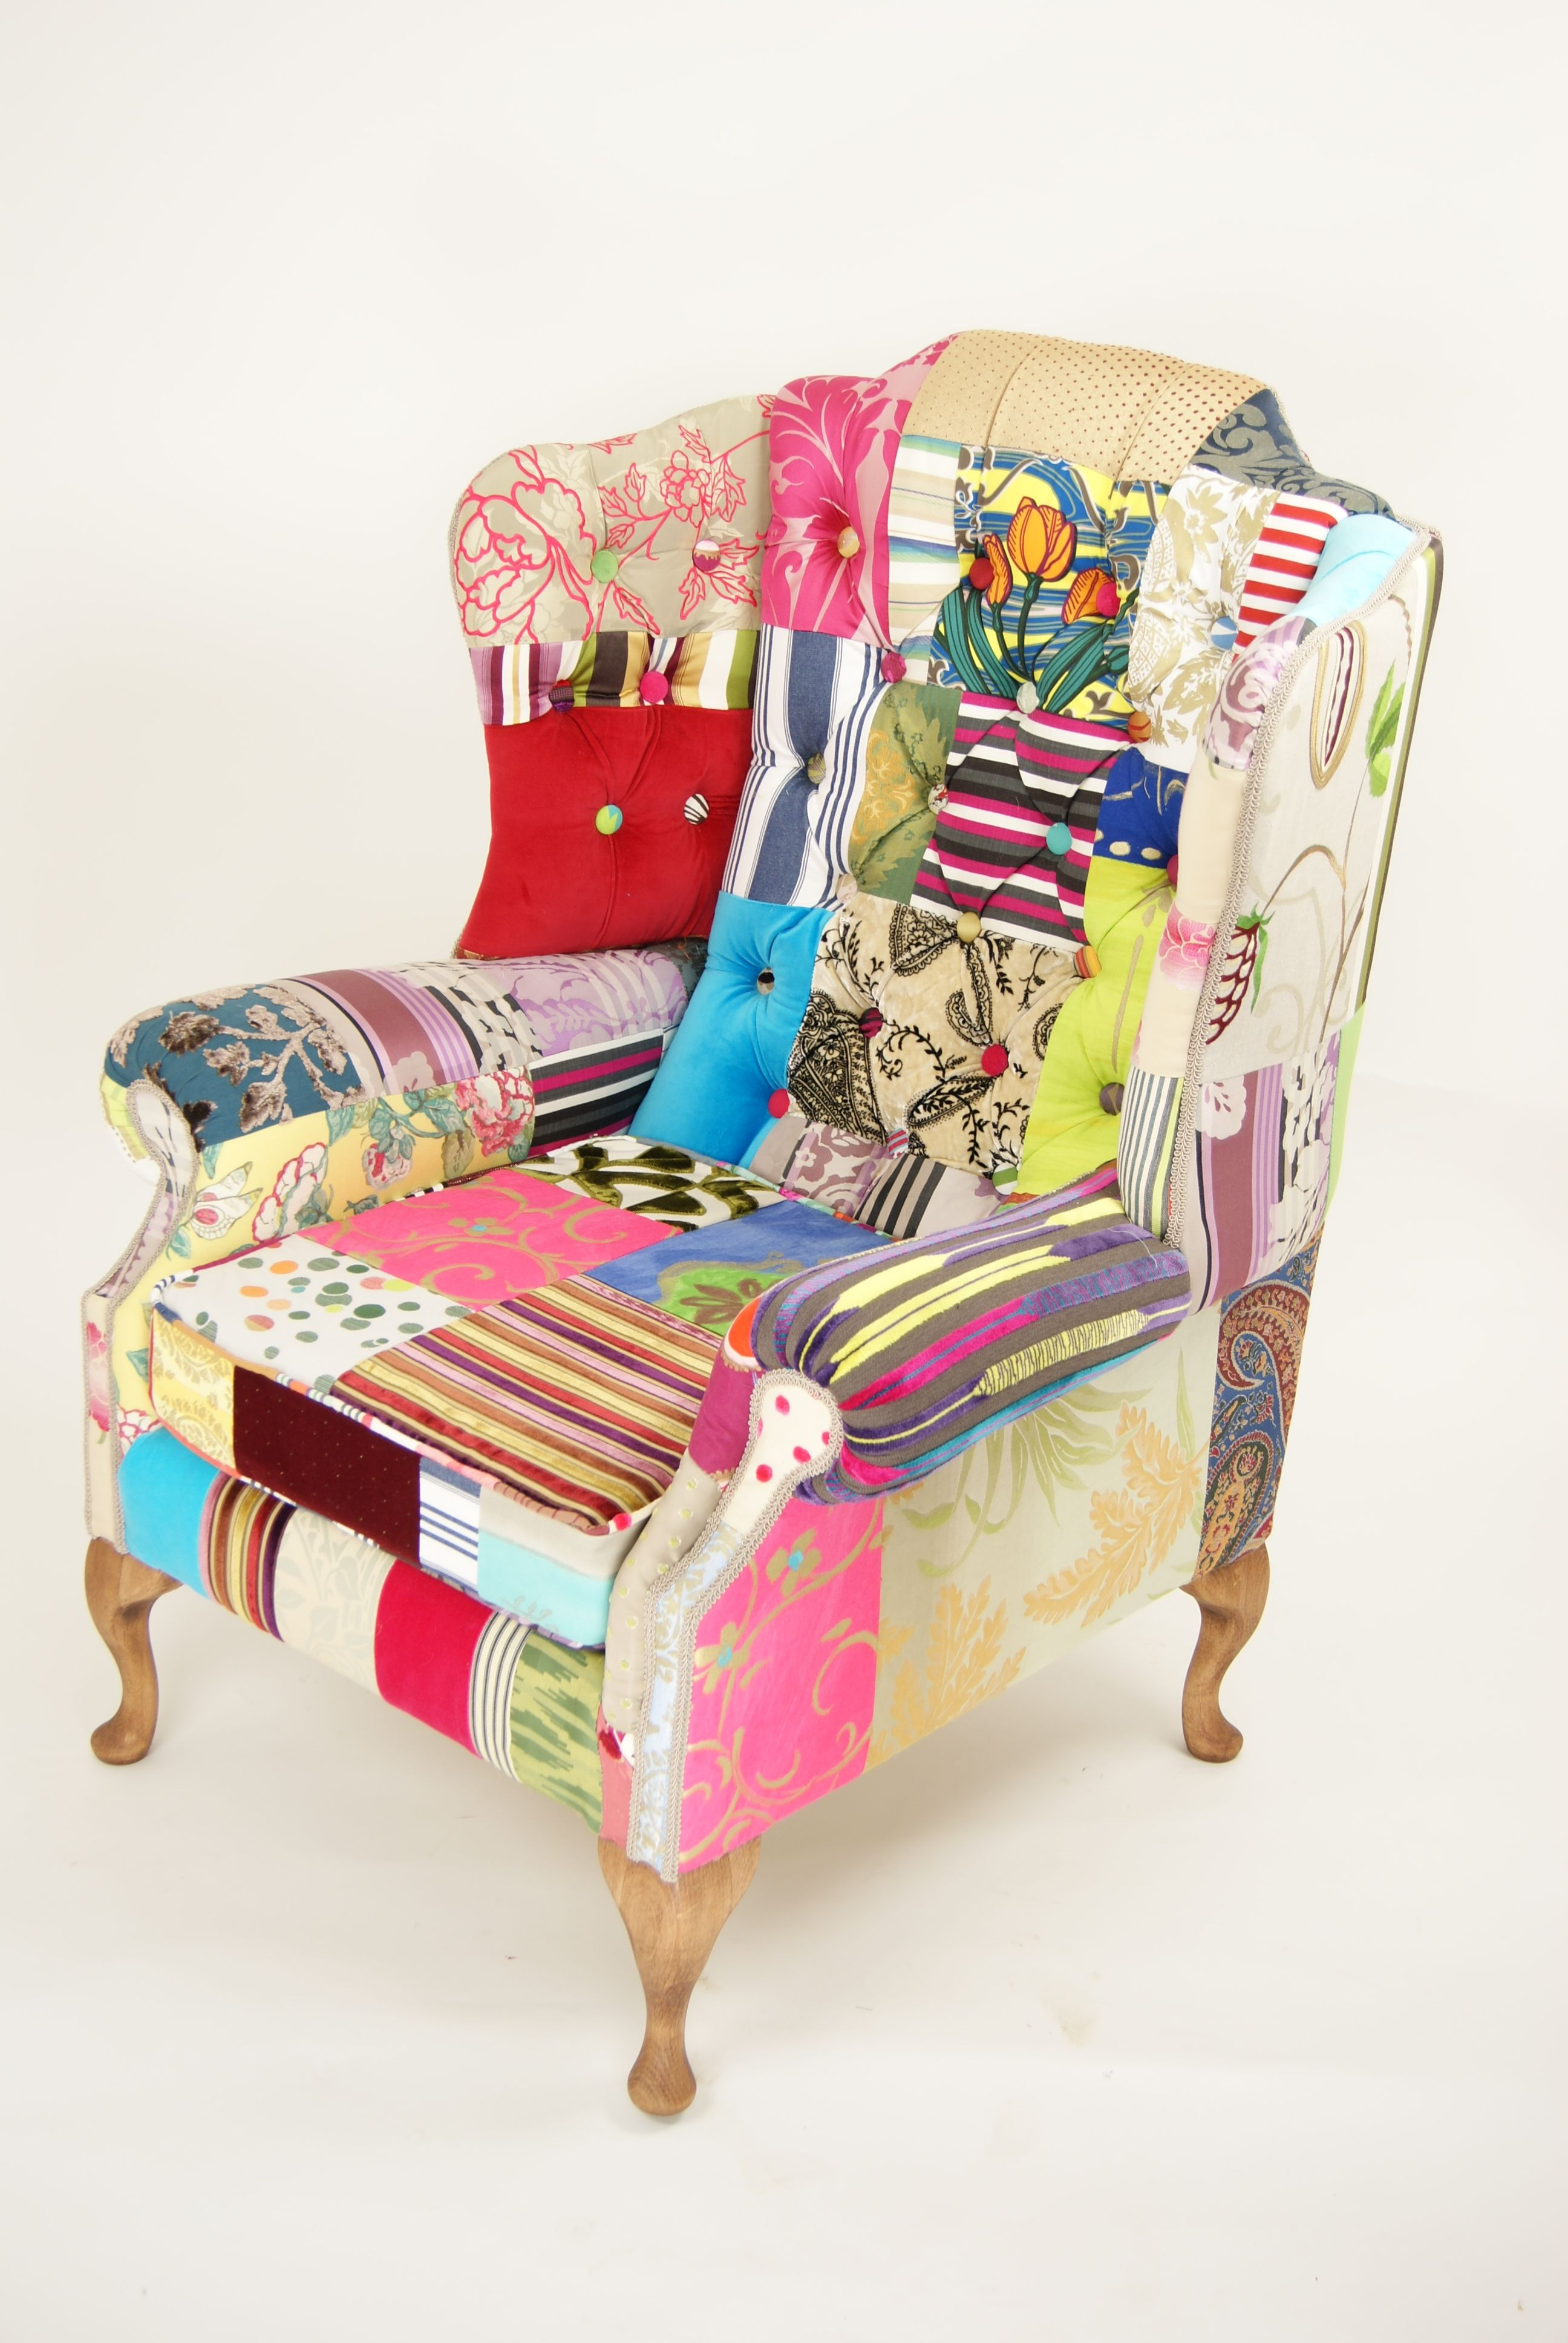 Chair Covers Yes Or No Allsteel Replacement Parts Pic Twitter 1d2helcymf Have A Seat Funky